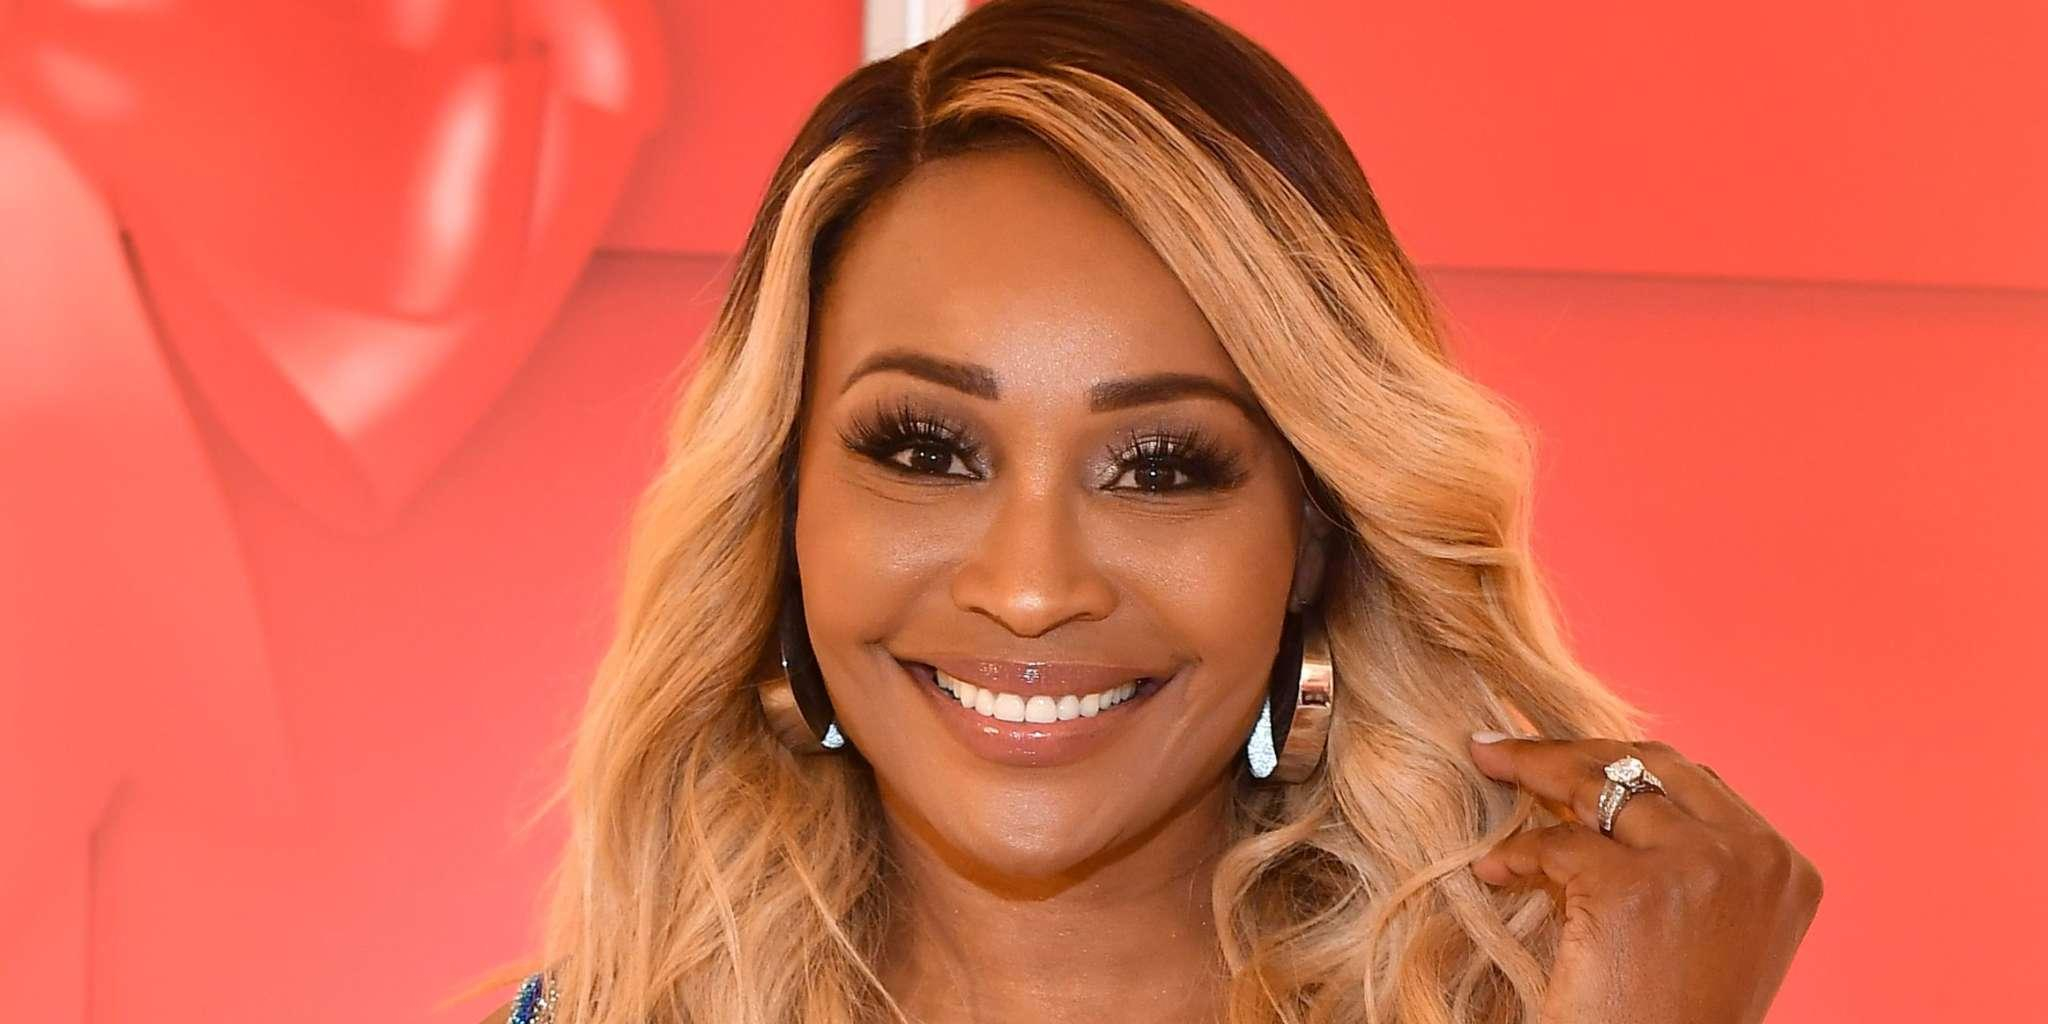 Cynthia Bailey Shares Her First Modelling Photoshoot From Back When She Was 19 Years Old